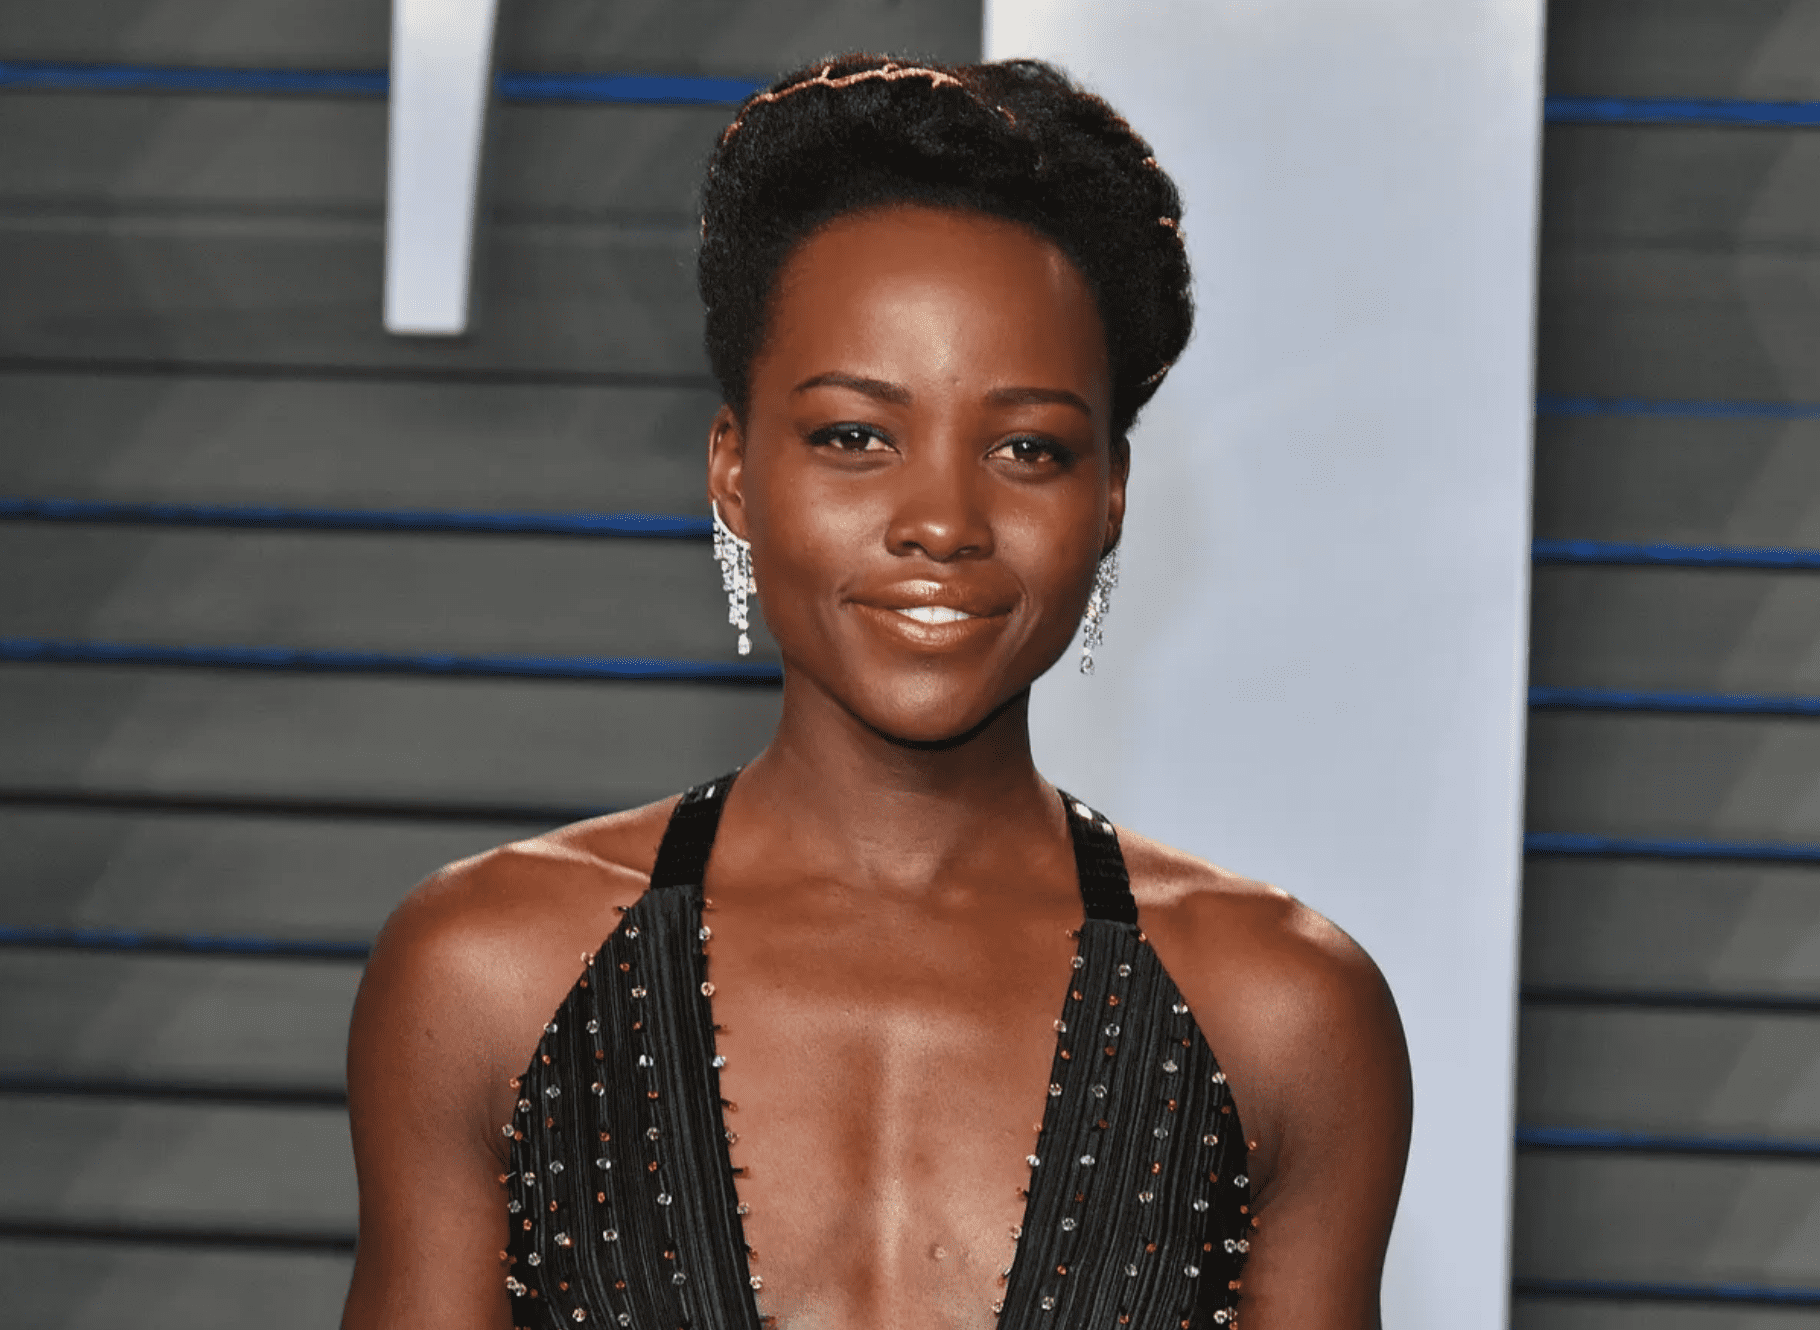 Lupita Nyong'o attends the Vanity Fair Oscar Party in Beverly Hills, California on March 4, 2018. | Source: Getty Images